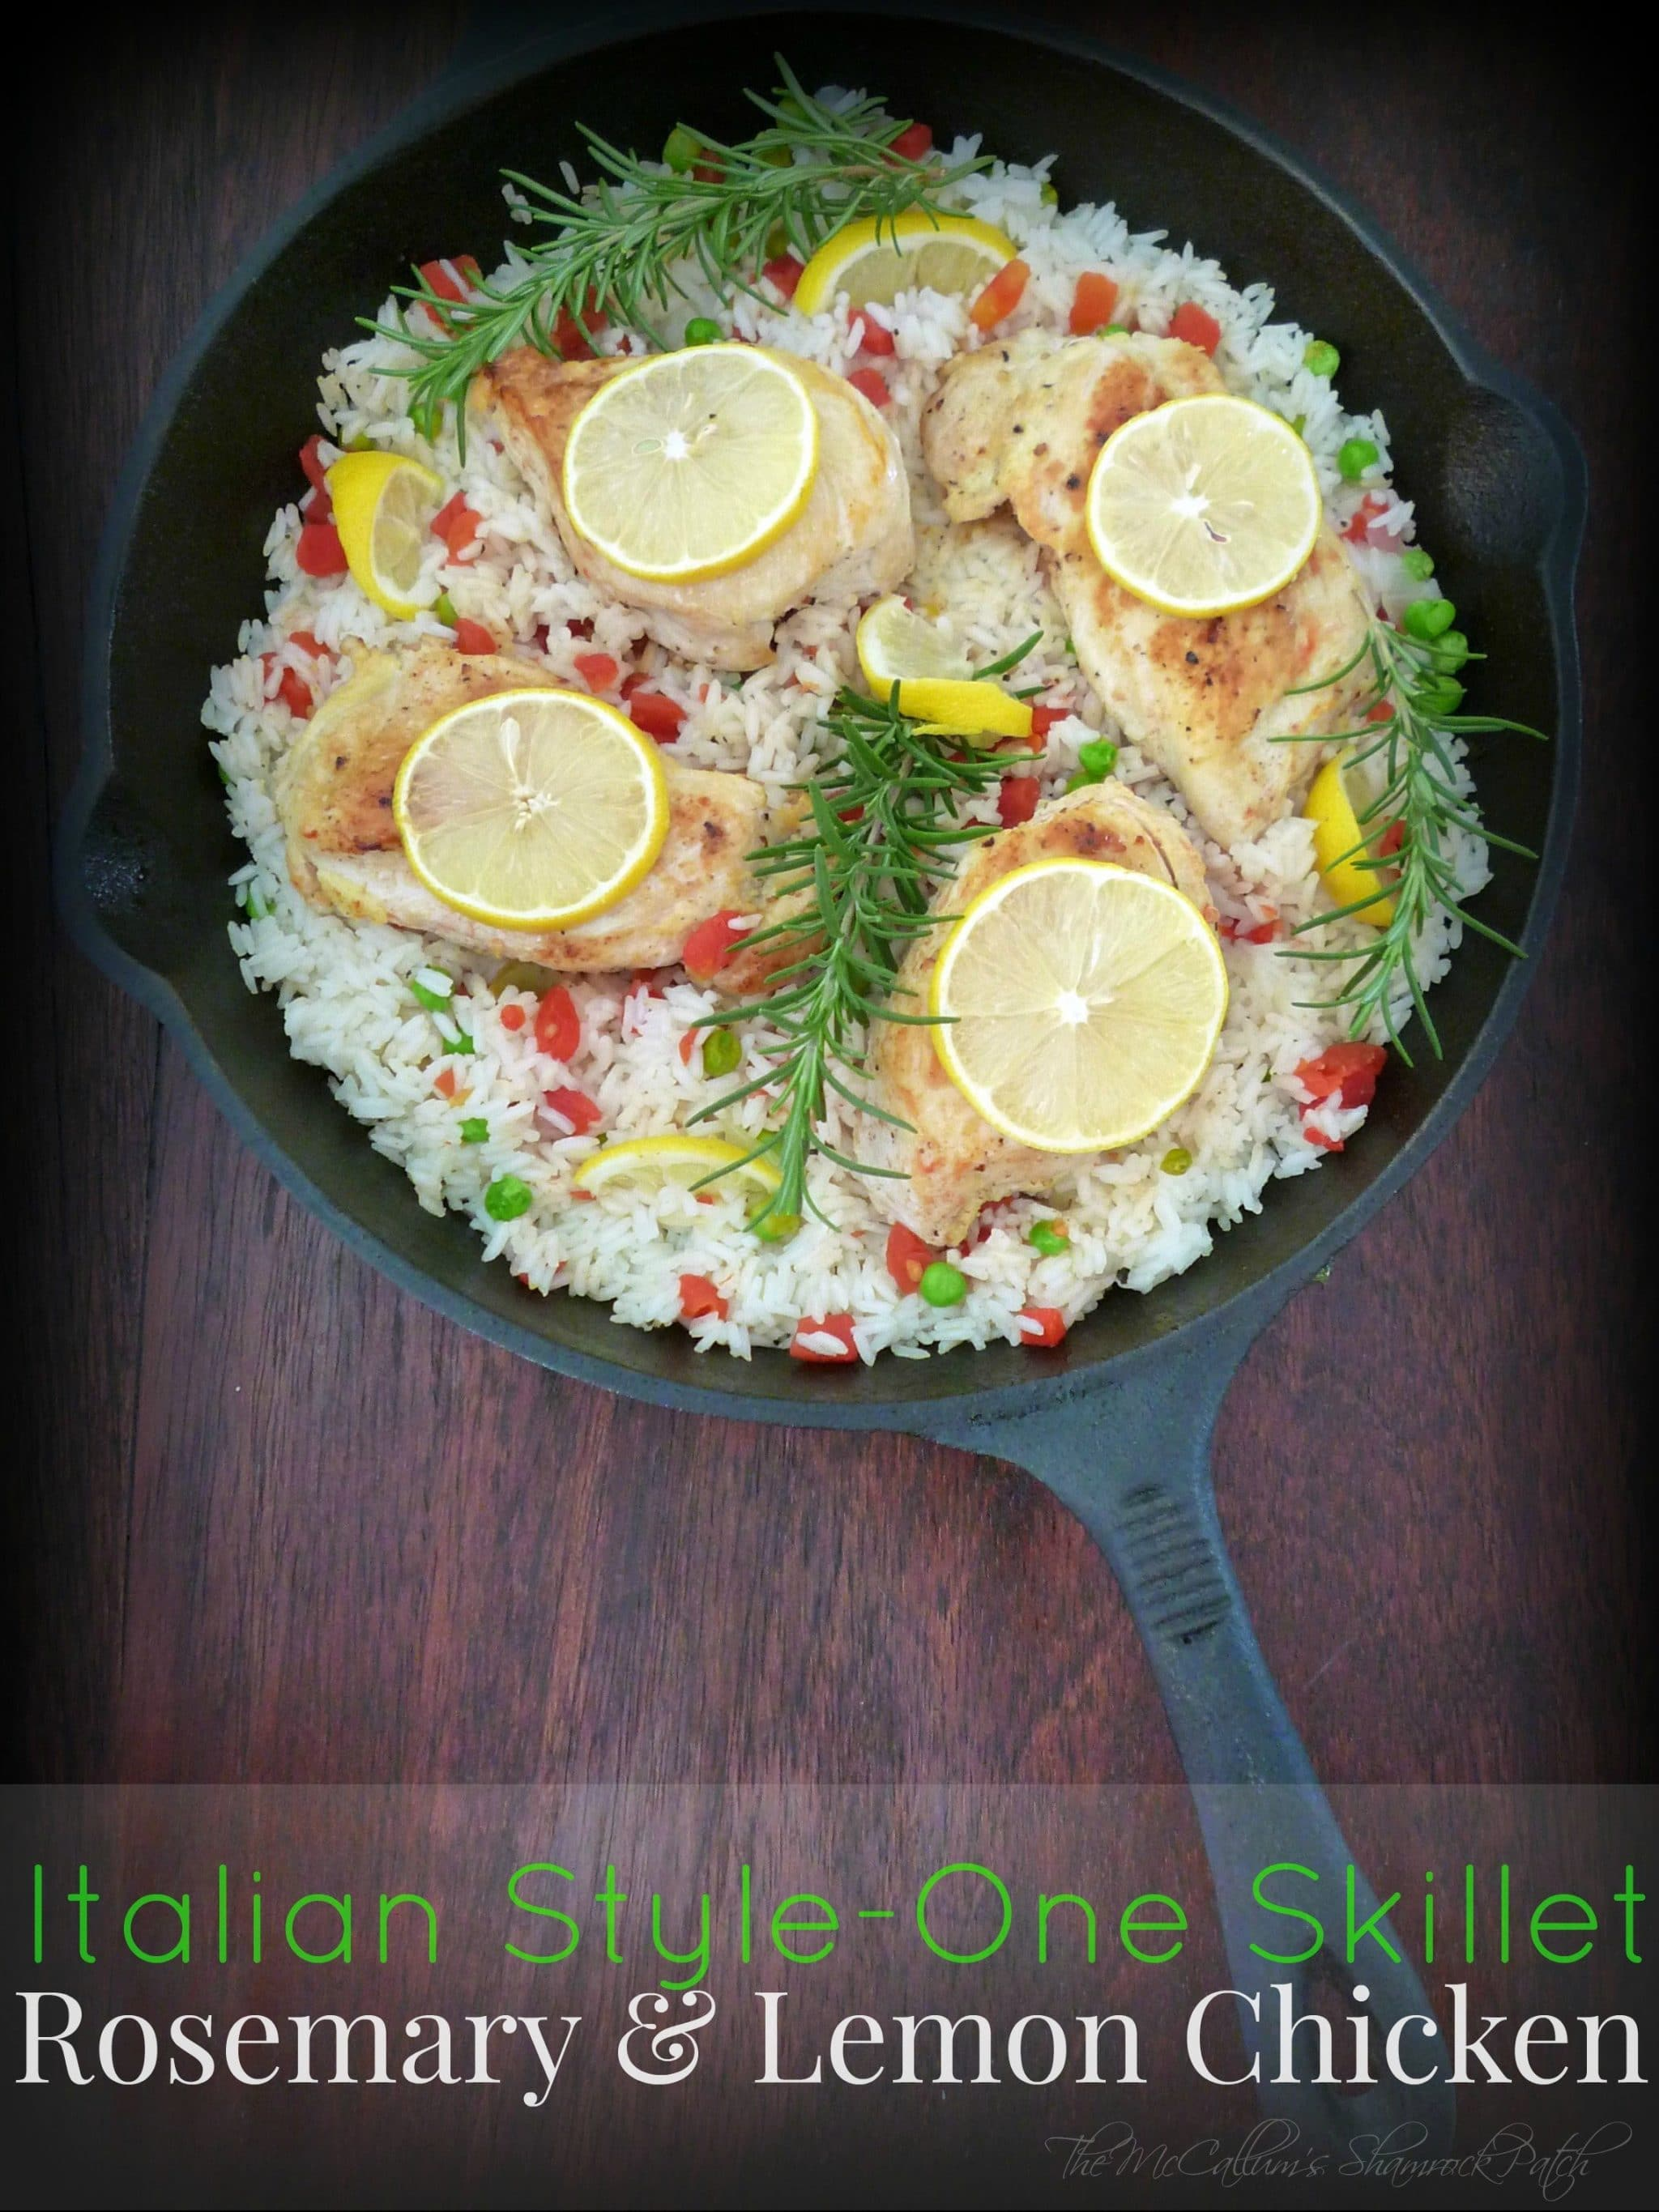 Rosemary & Lemon Chicken SKillet fits the bill for those looking for a new Chicken recipe with a ton of flavor and less mess to clean. A perfect combination of Lemon and Rosemary chicken on a bed of delicious white rice cooked in chicken stock and white wine.